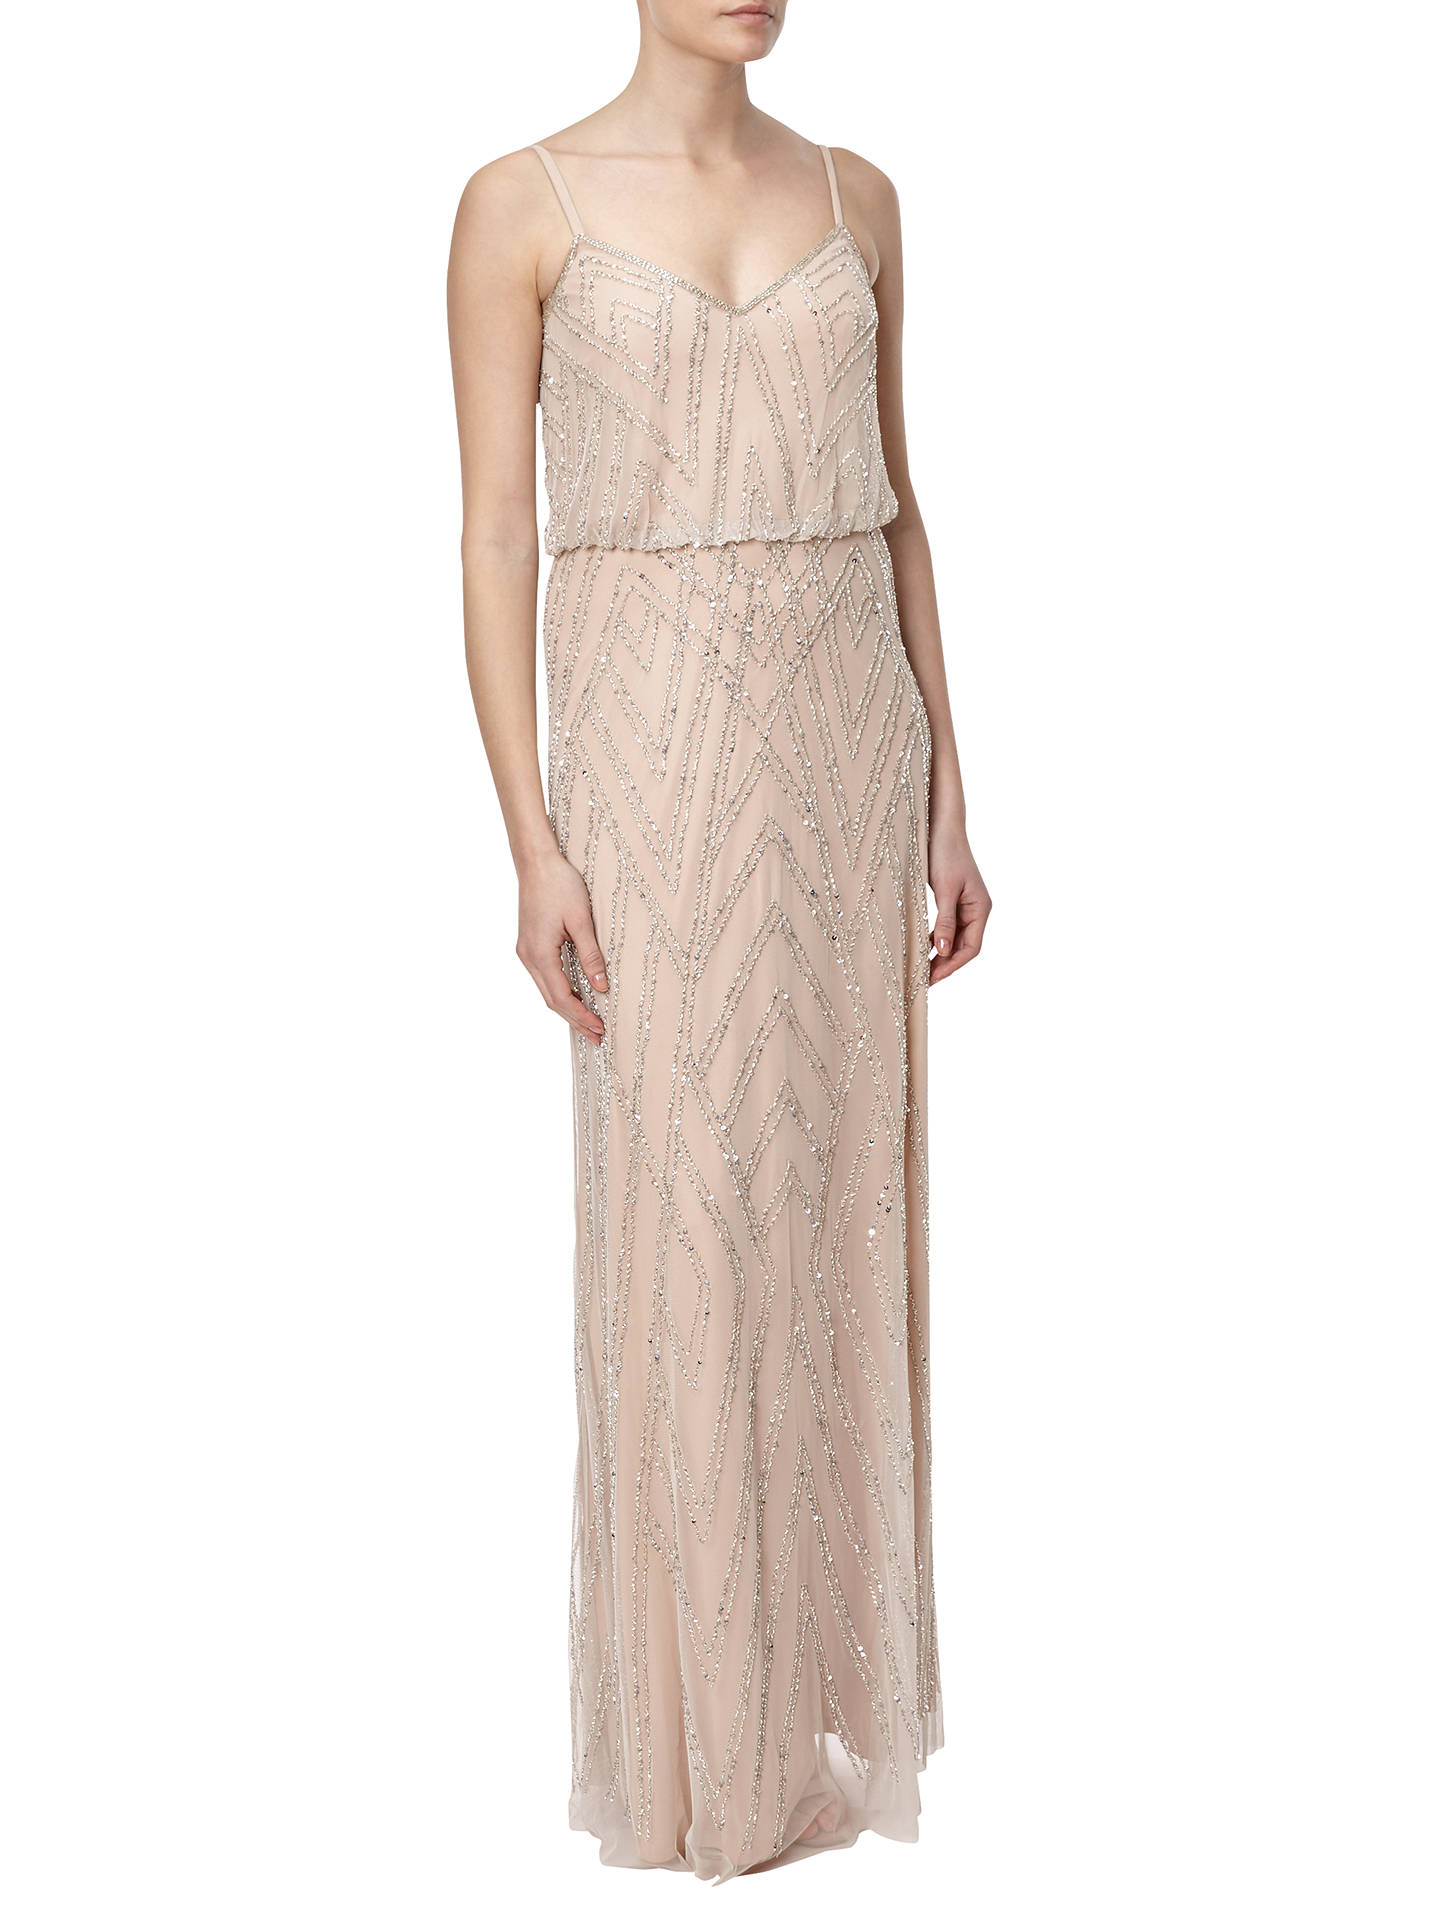 Adrianna Papell Sleeveless Blouson Gown, Silver/Nude at John Lewis ...